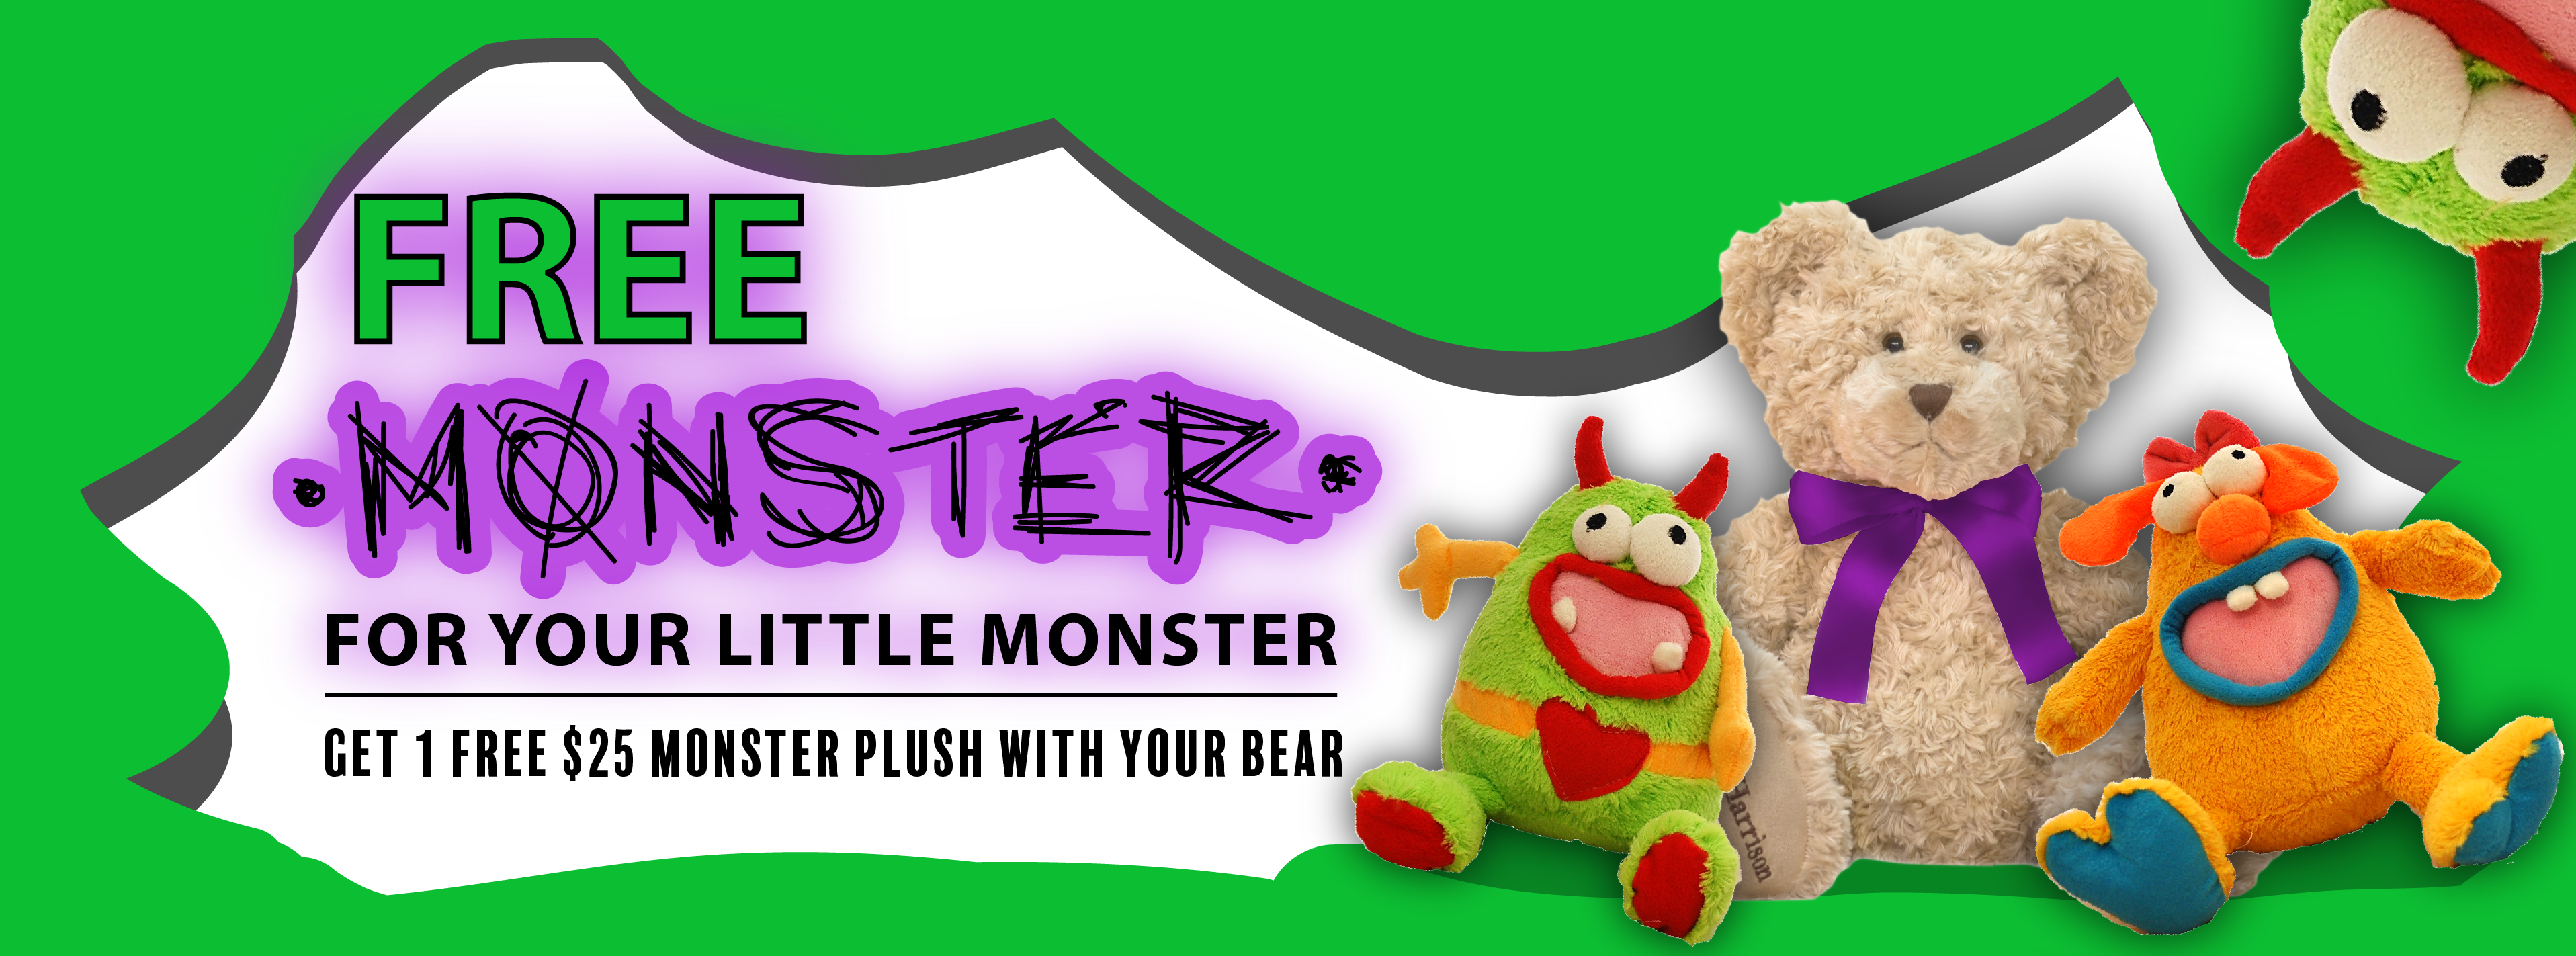 Get a FREE $25 monster plush this October when you order a Bear online